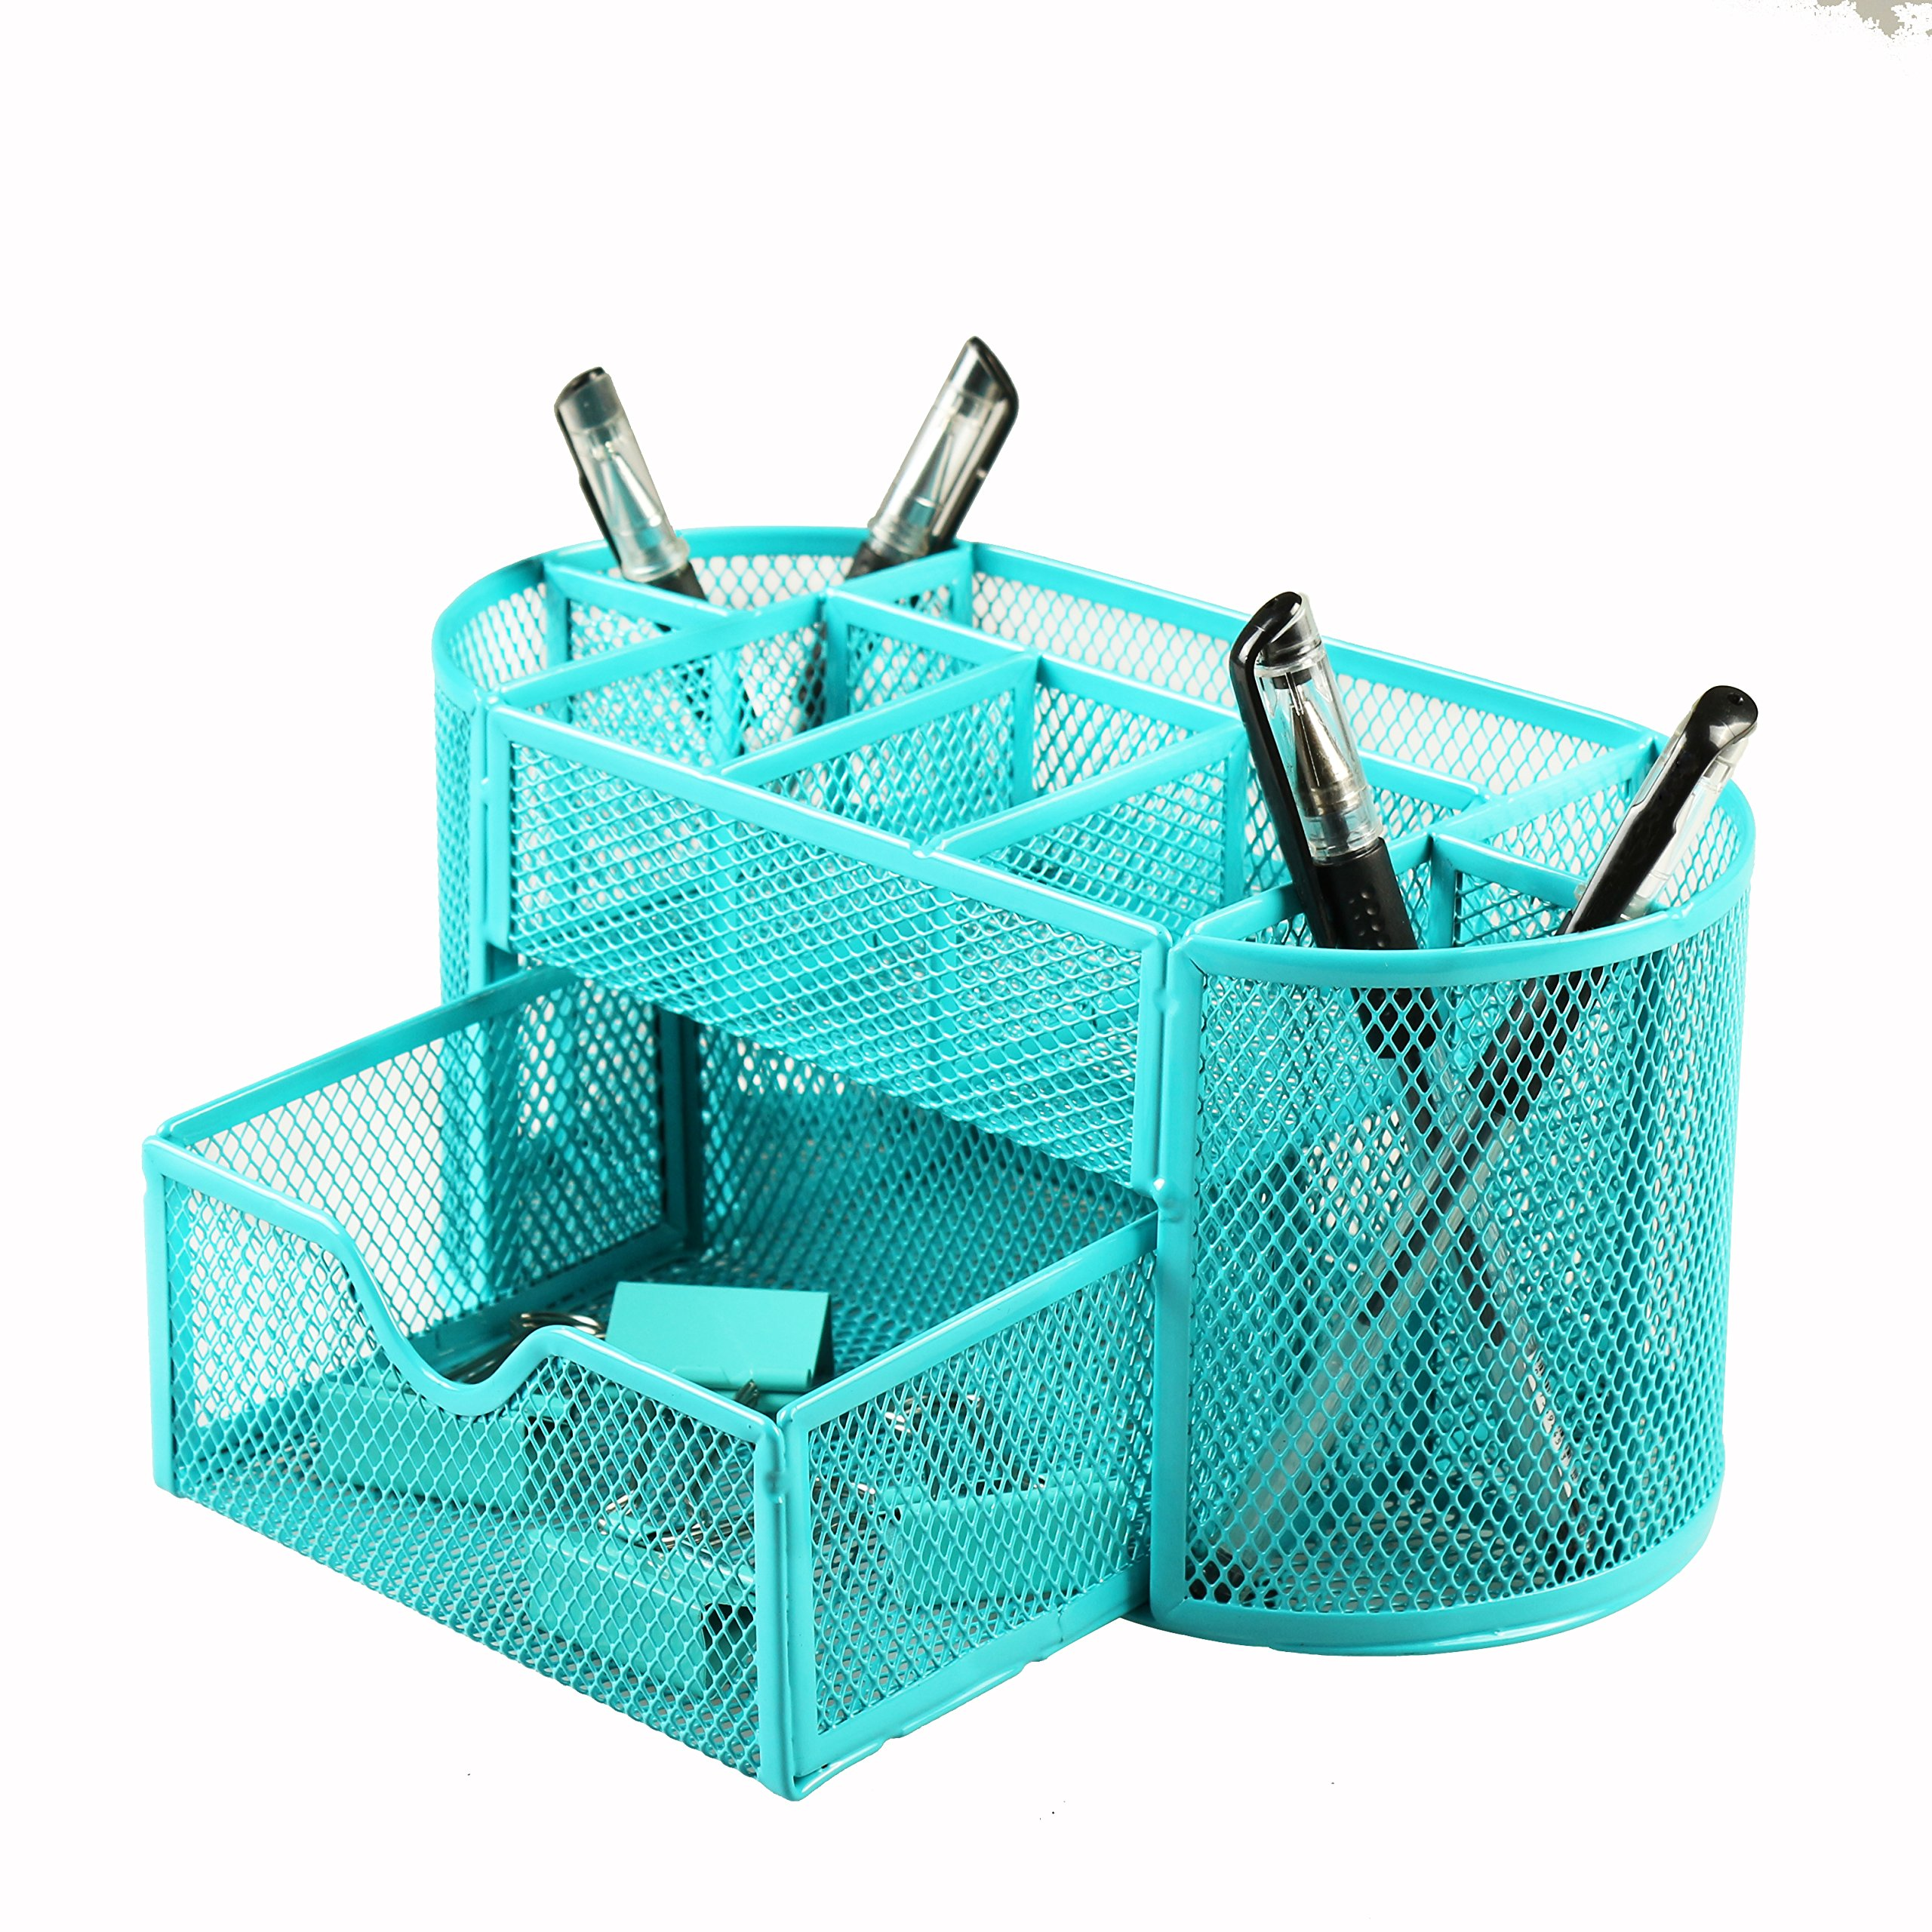 Xinyaoshi Desk Organizer, Metal Mesh, 1 Slide Drawer, 8 Compartment, School, Office Supplies, Storage Caddy with Drawer (Blue)